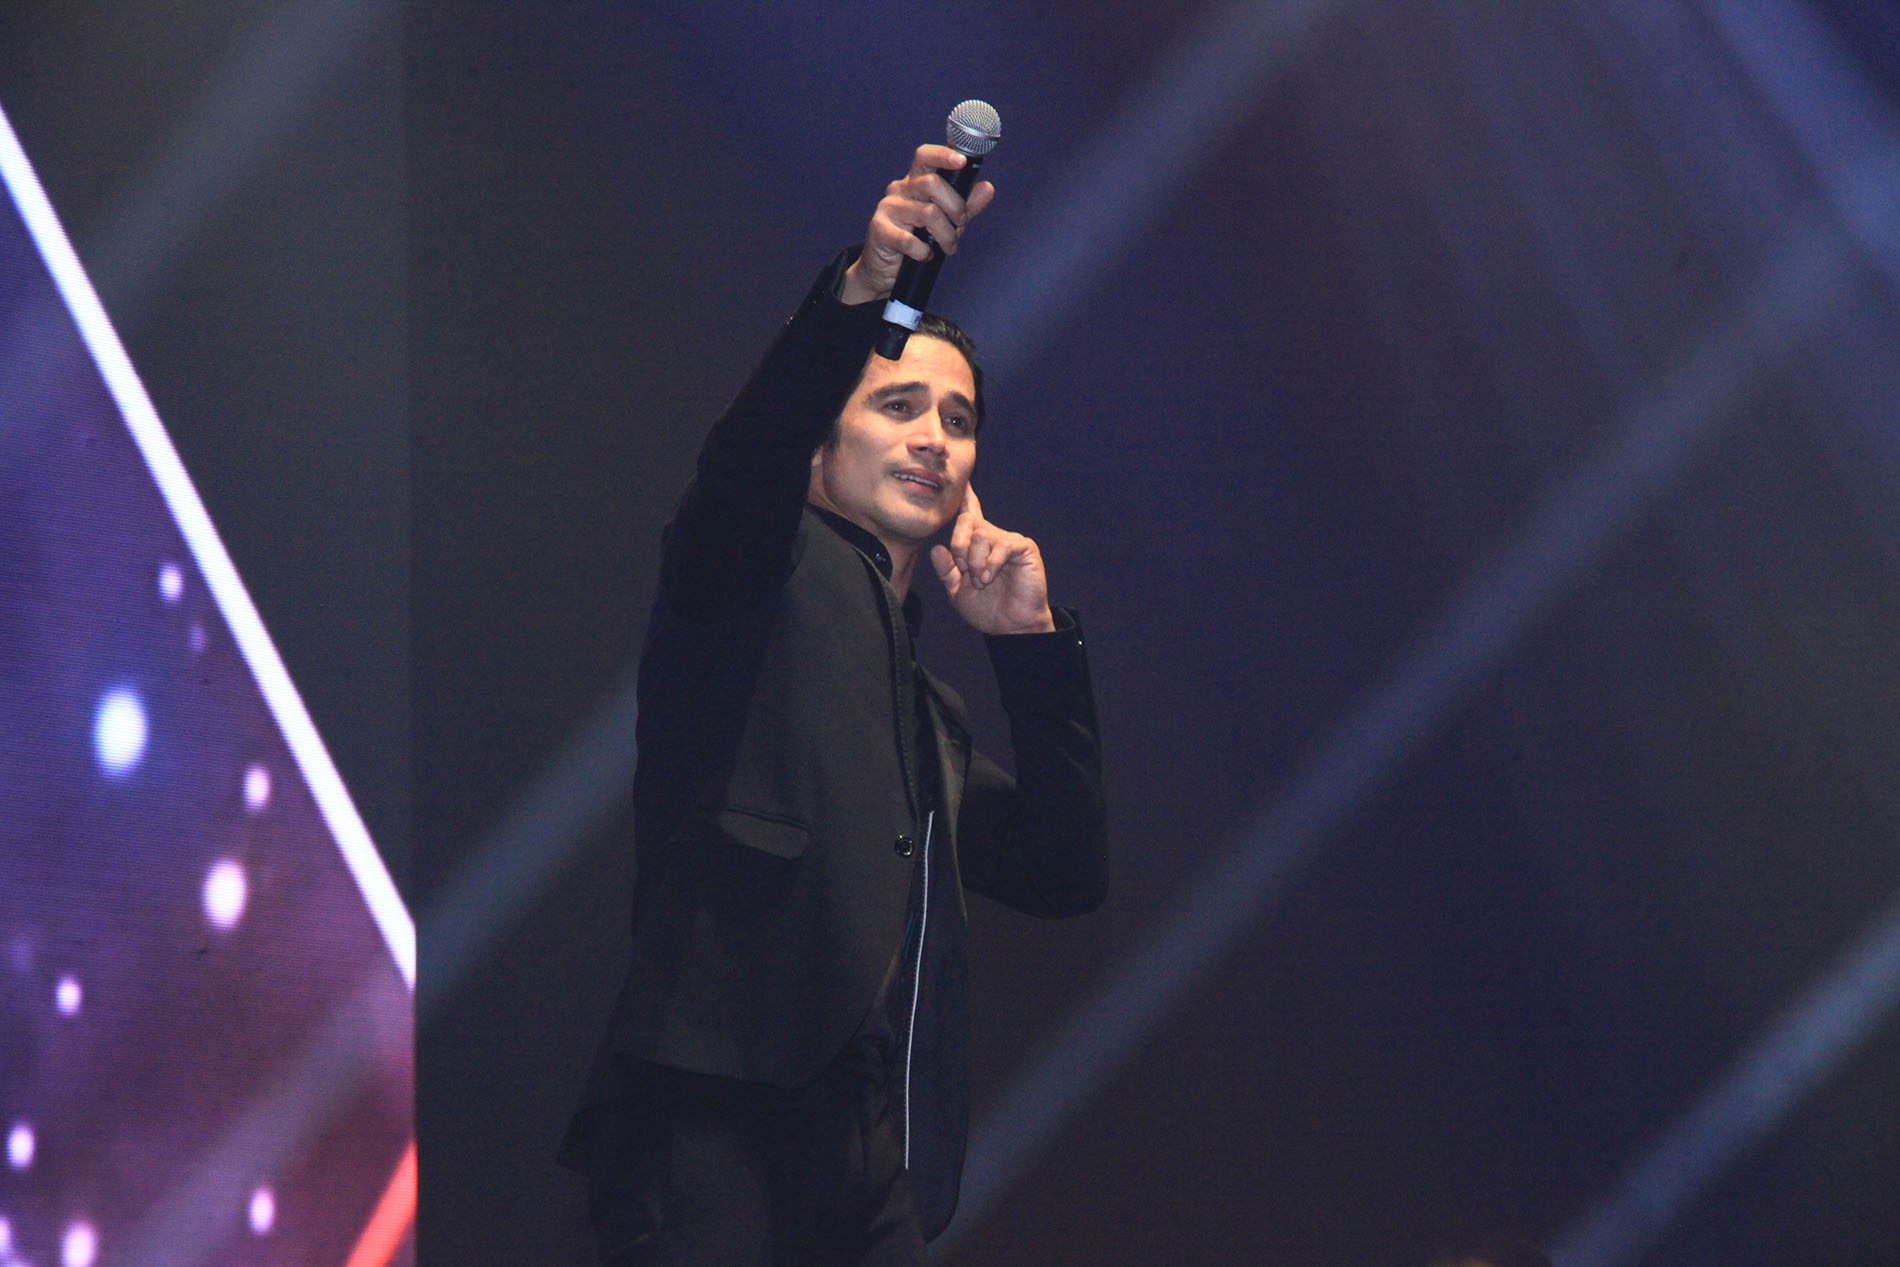 Event - Piolo Pascual in Dubai